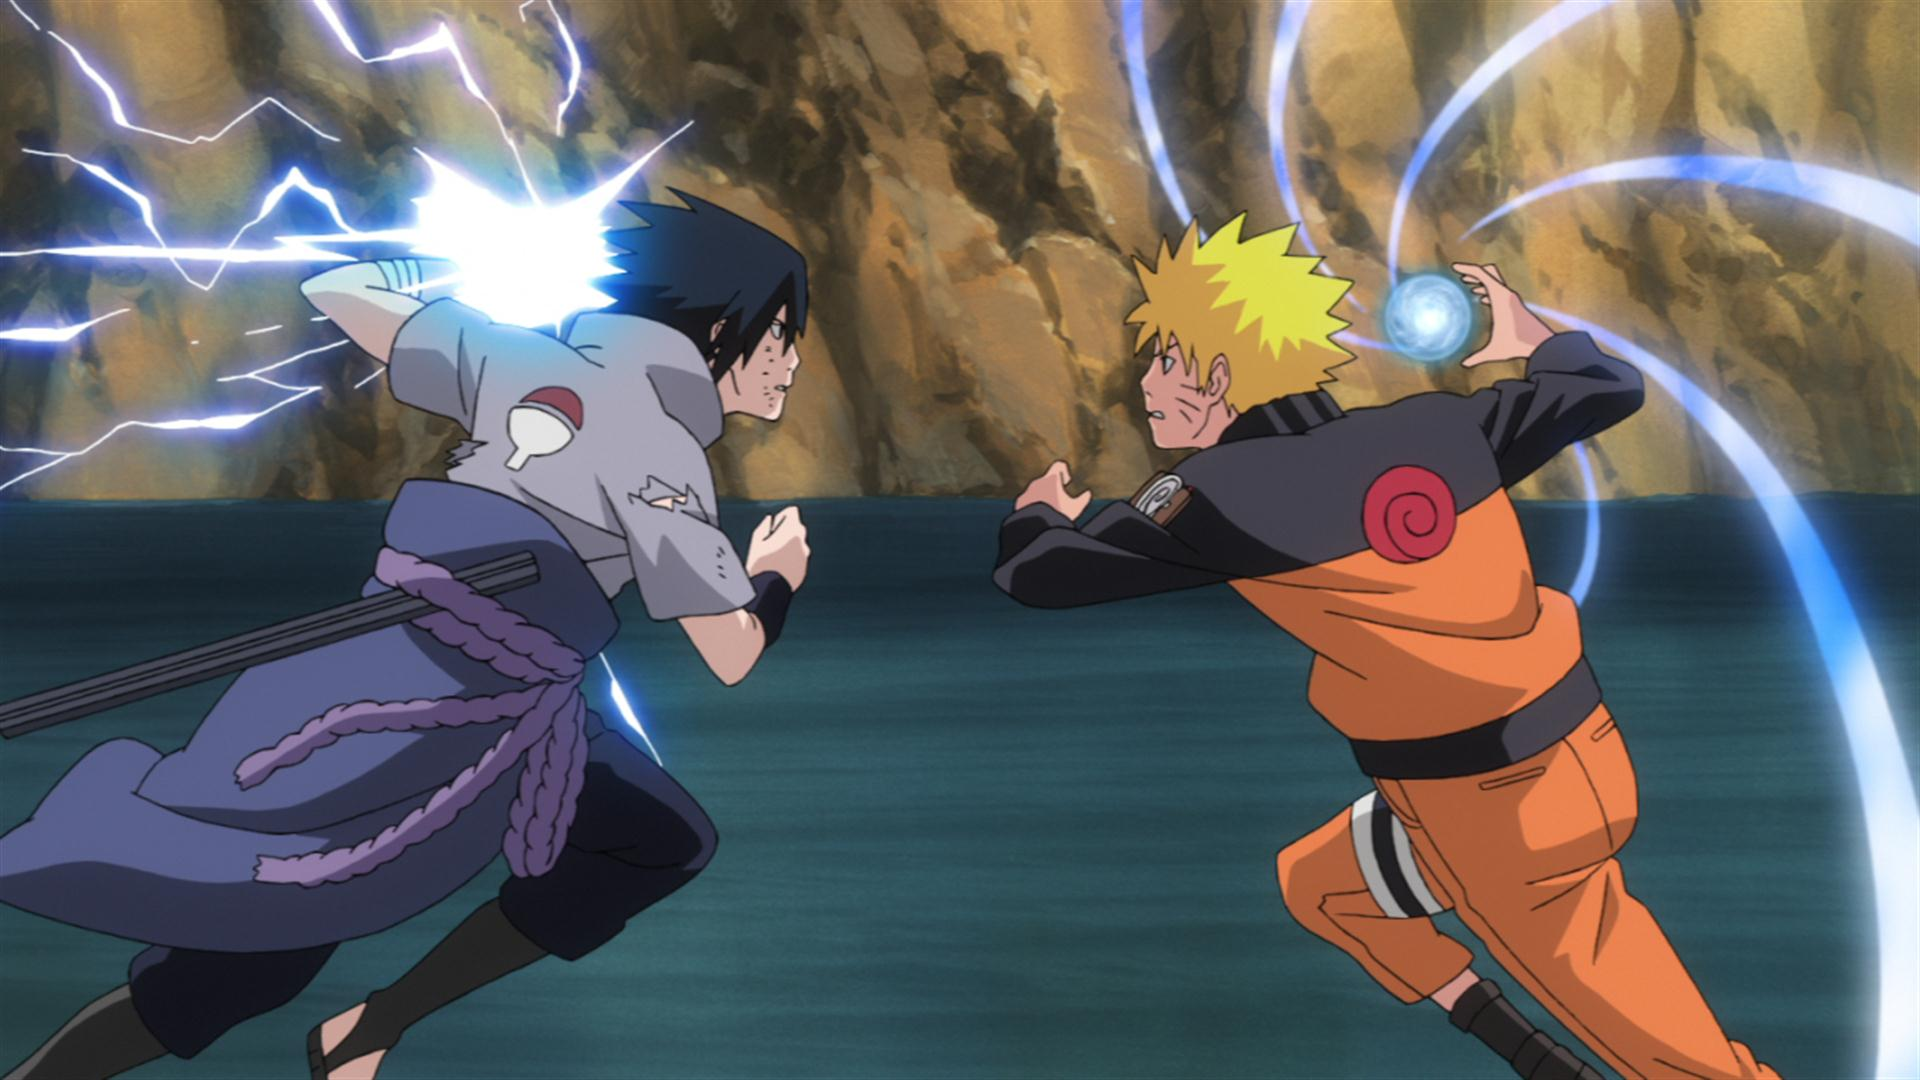 Naruto Vs Sasuke Wallpapers - Wallpaper Cave